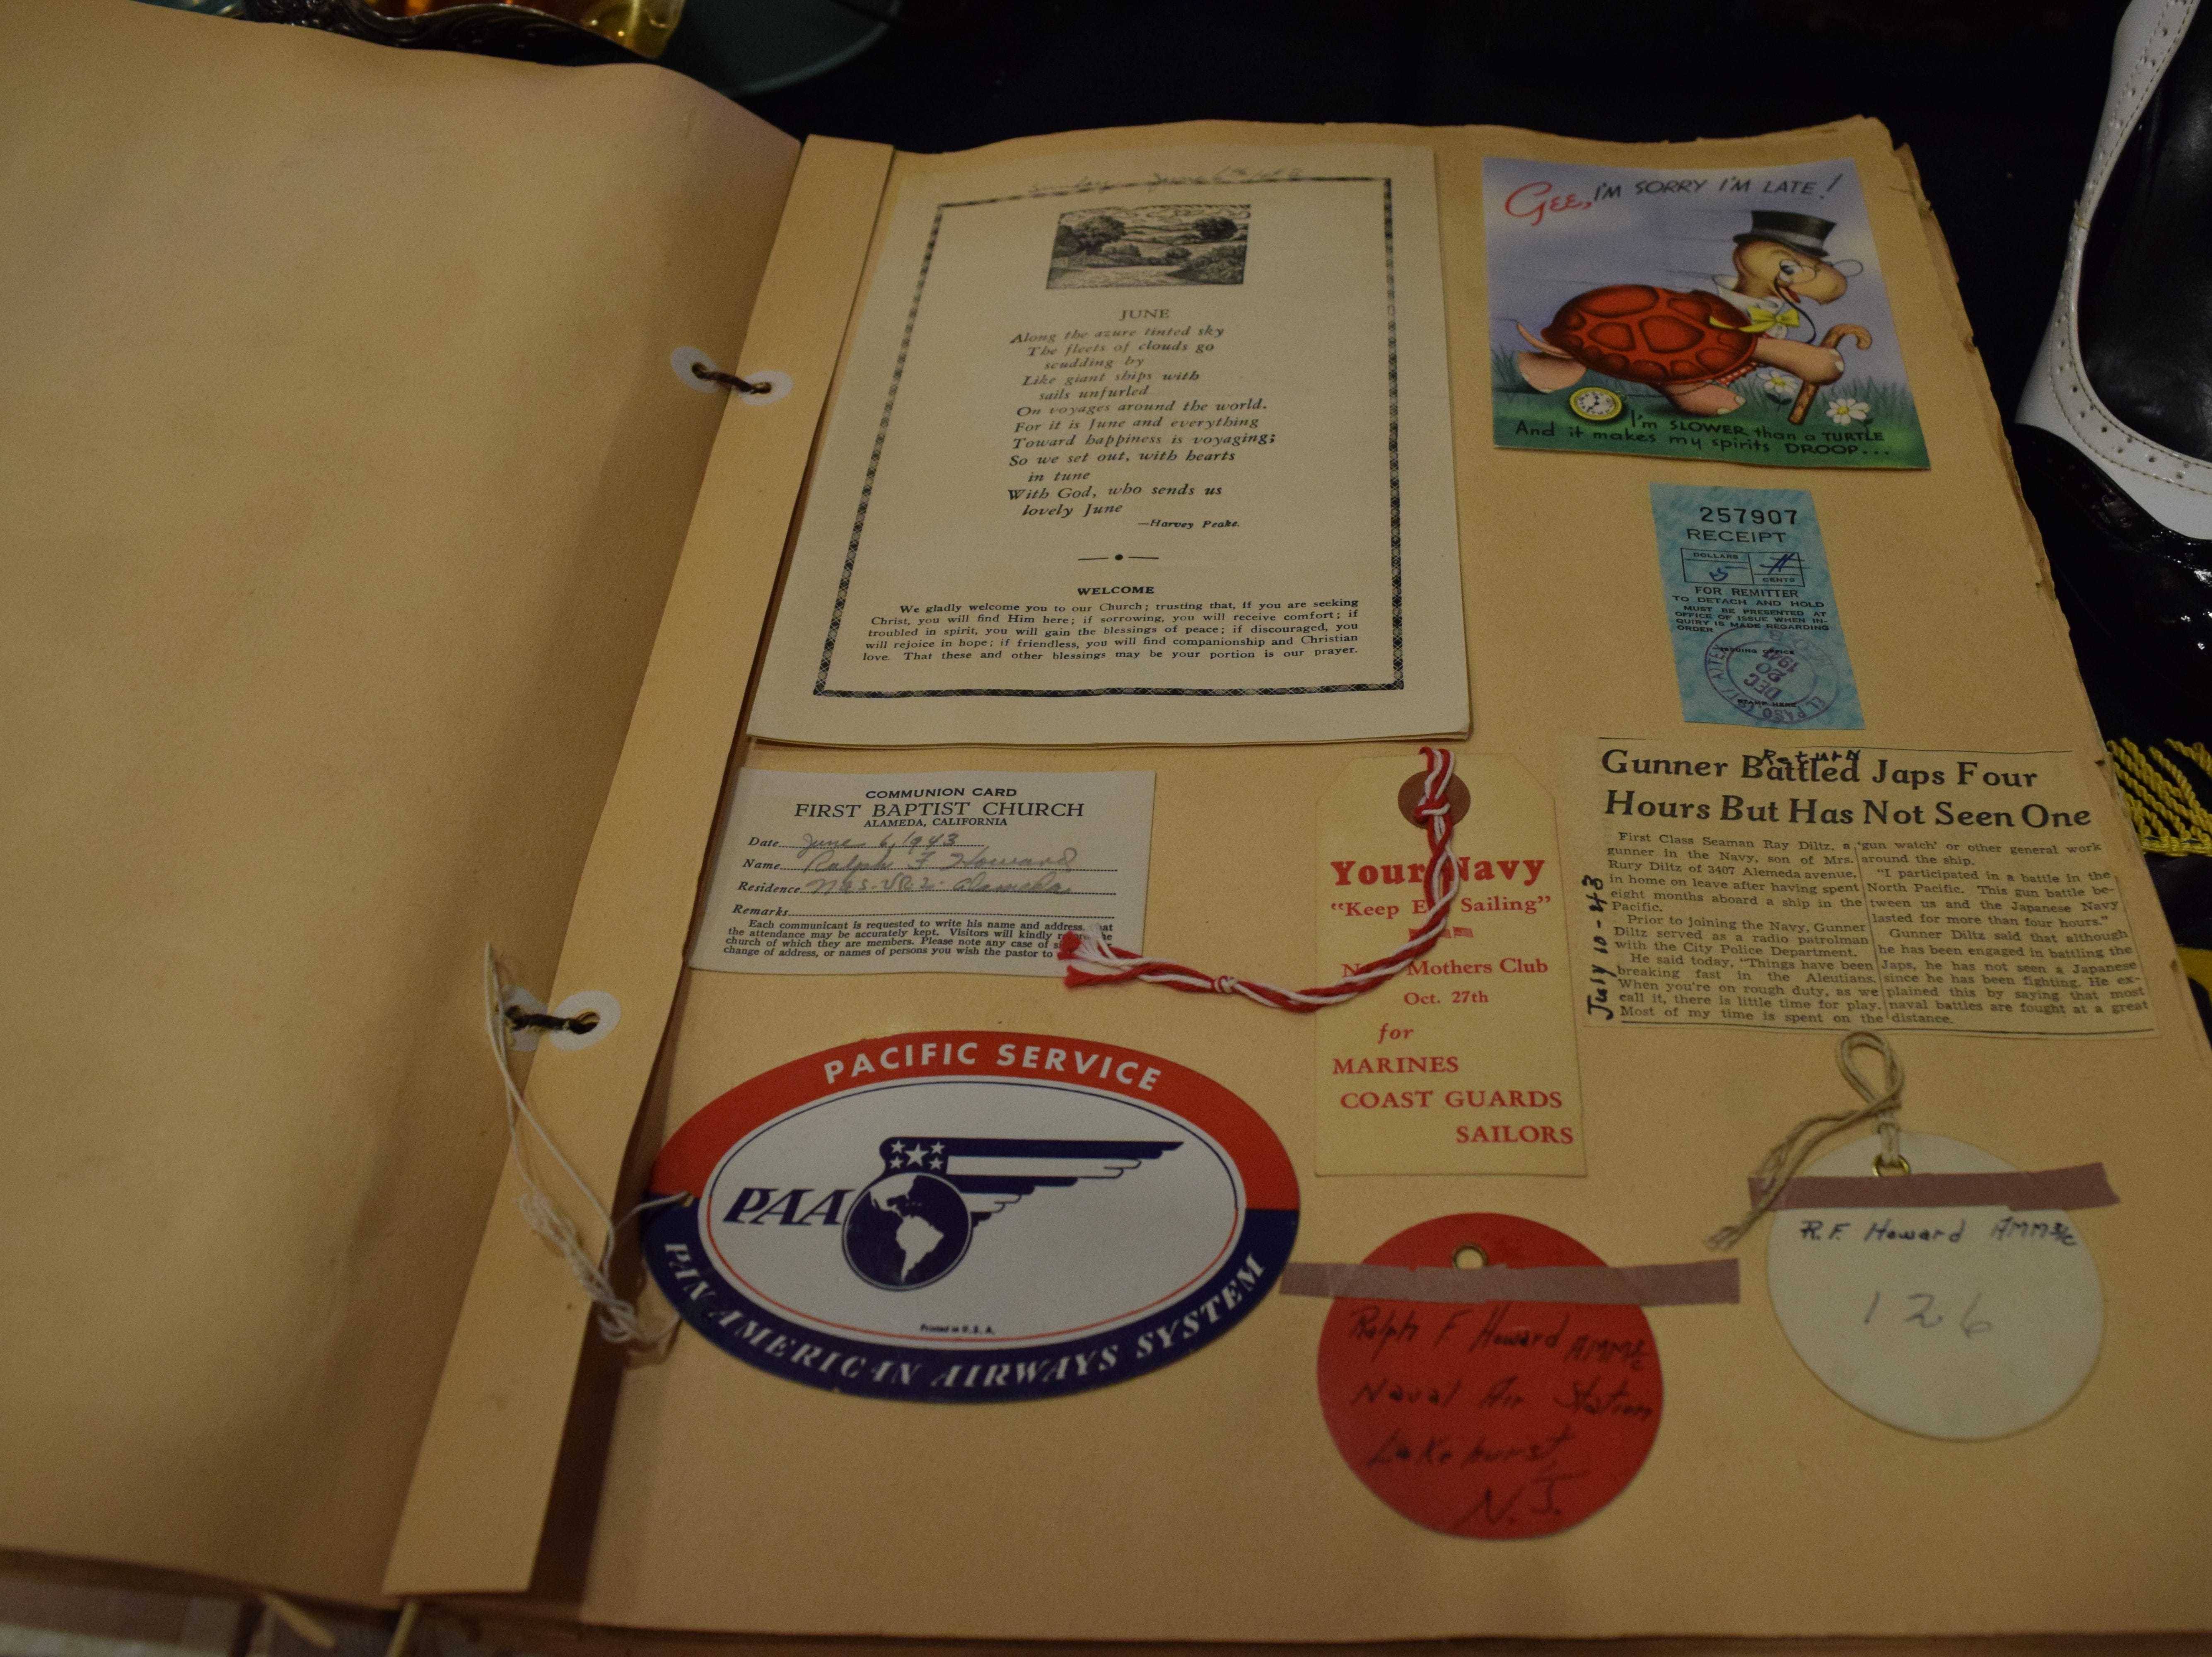 This scrapbook was created during World War II by a Mrs. A F Howard in El Paso. It chronicled the lives of her three sons who all joined the navy to fight in the war. The scrapbook features news clipping, luggage tags, telegrams and even bar napkins that her sons would send back to her. — Antiques Treasures Show at the Farm and Ranch Heritage Museum, Jan. 26, 2019.